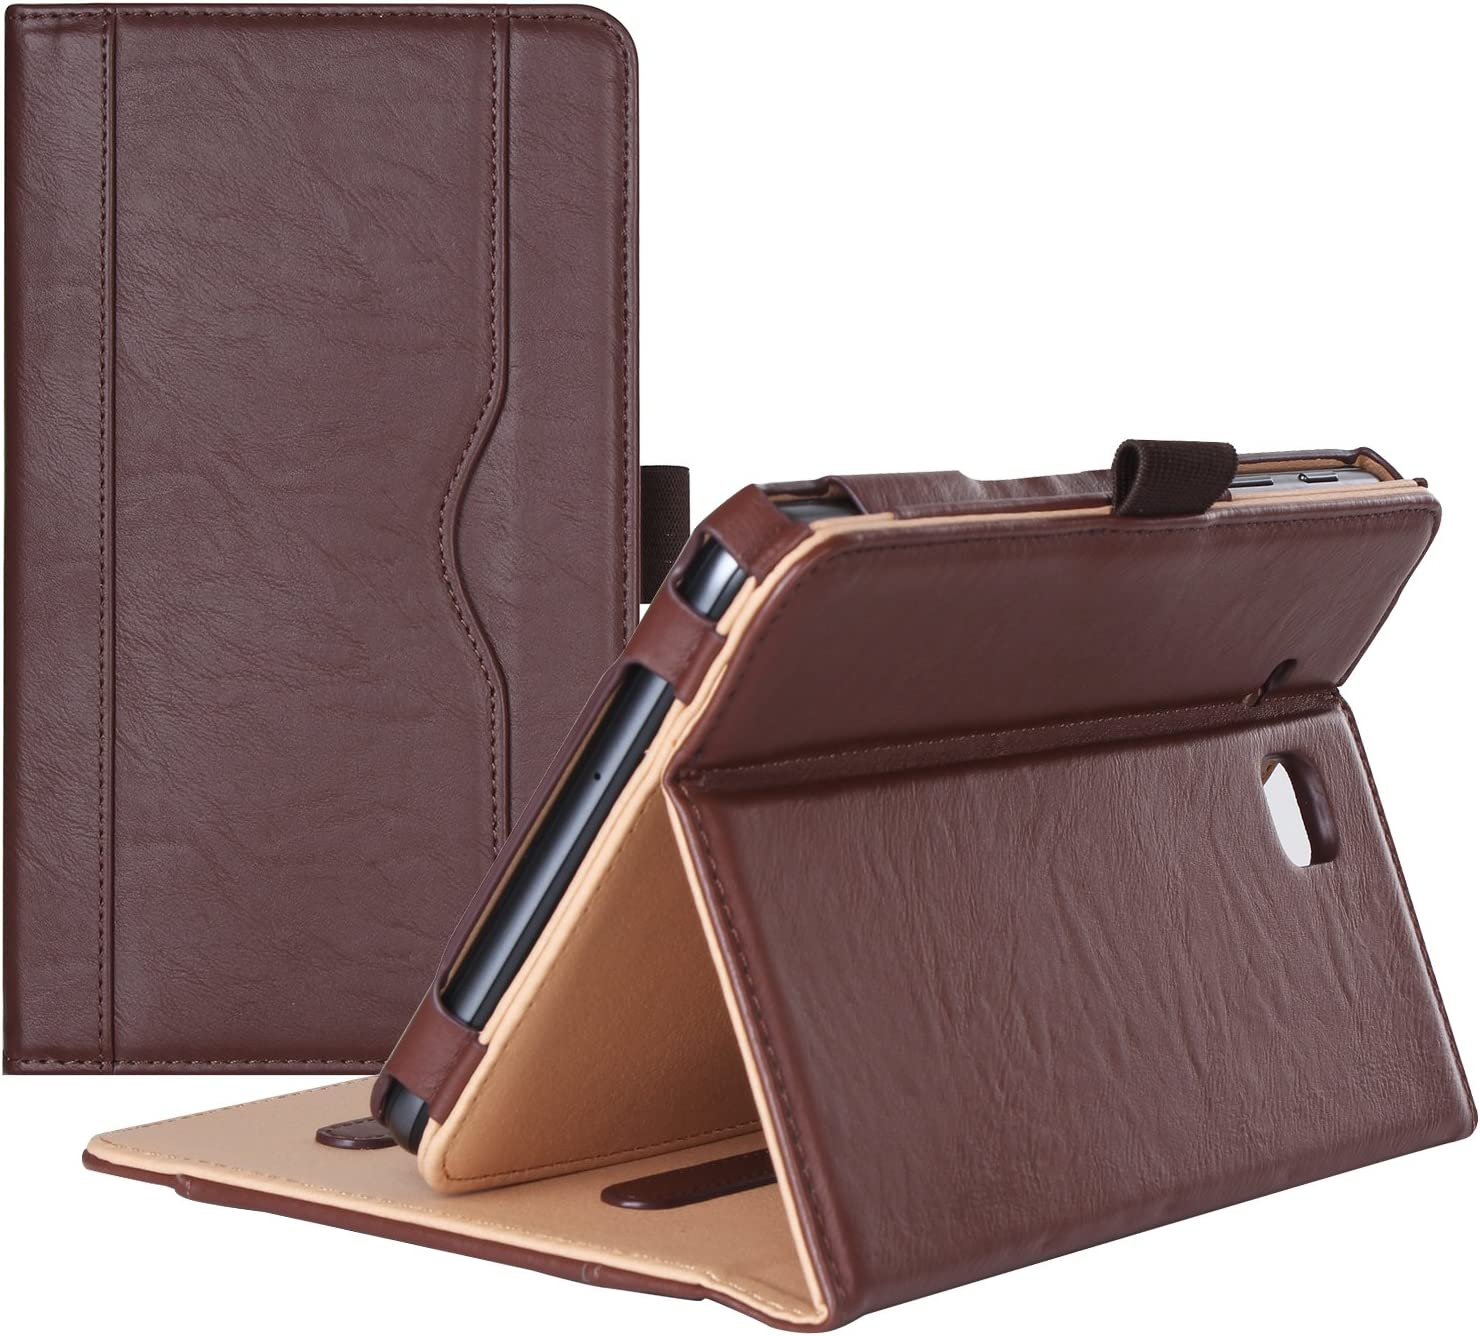 ProCase Galaxy Tab A 7.0 2016 Case T280 T285, Stand Folio Case Cover for Galaxy Tab A 7.0 SM-T280 SM-T285 Tablet, with Multiple Viewing Angles, Document Card Pocket (Brown)